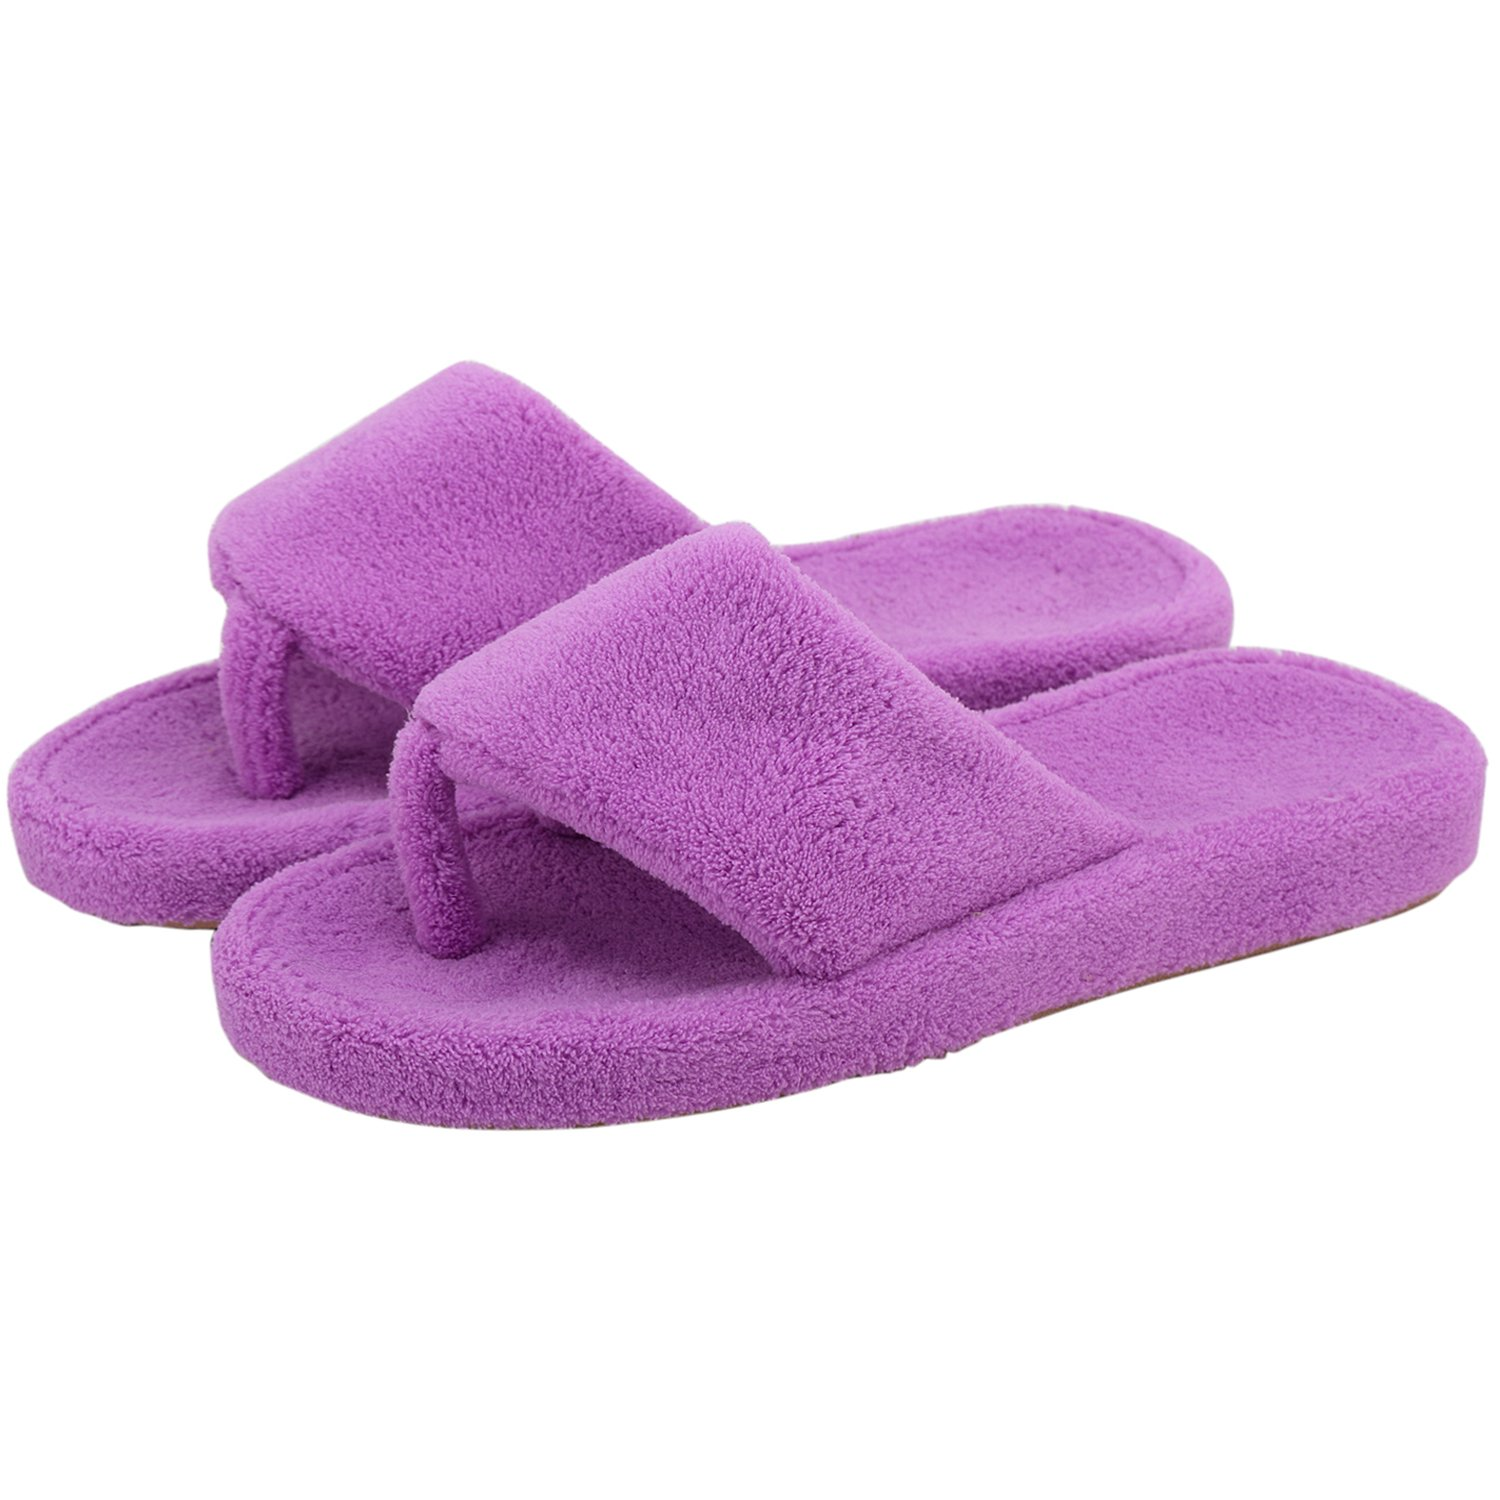 Onmygogo Women Coral Fleece House Slippers with Arch Support, Flip-Flops Thong Slippers for Men and Women (US Women Size 9.5-10.5, Purple)